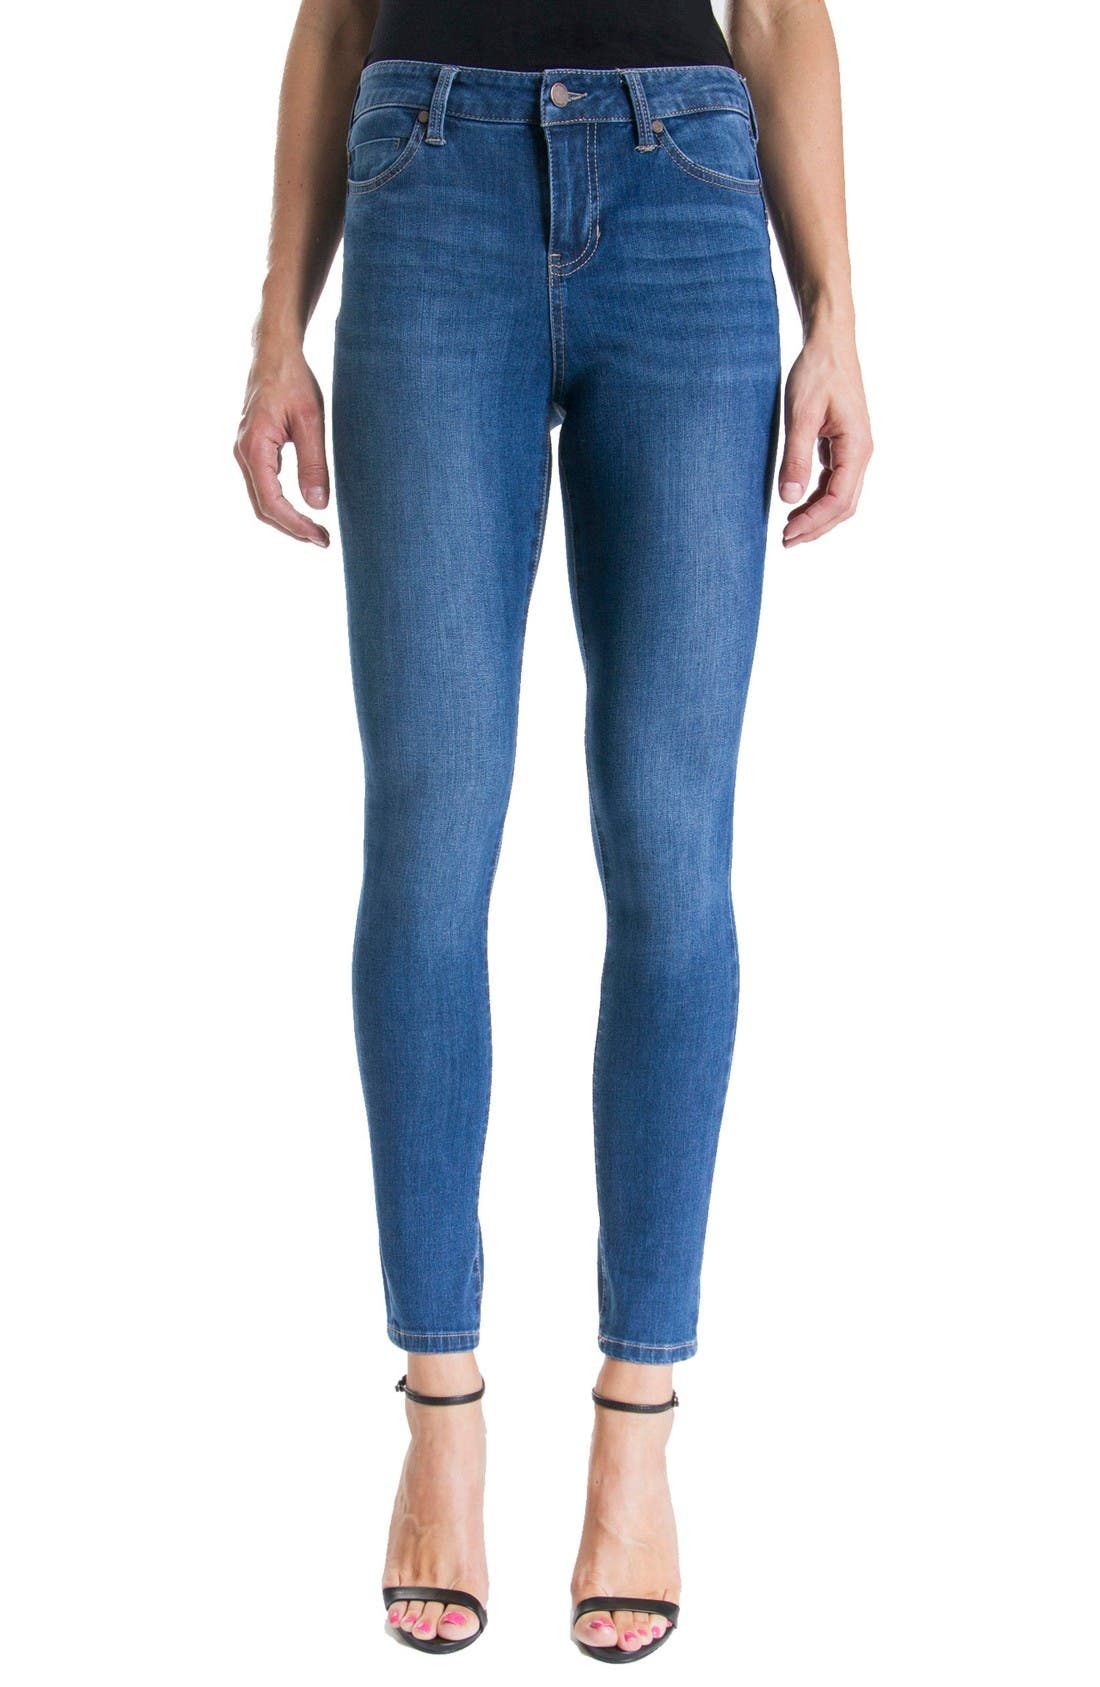 Piper Hugger Lift Sculpt Ankle Skinny Jeans,                         Main,                         color, Hydra Stone